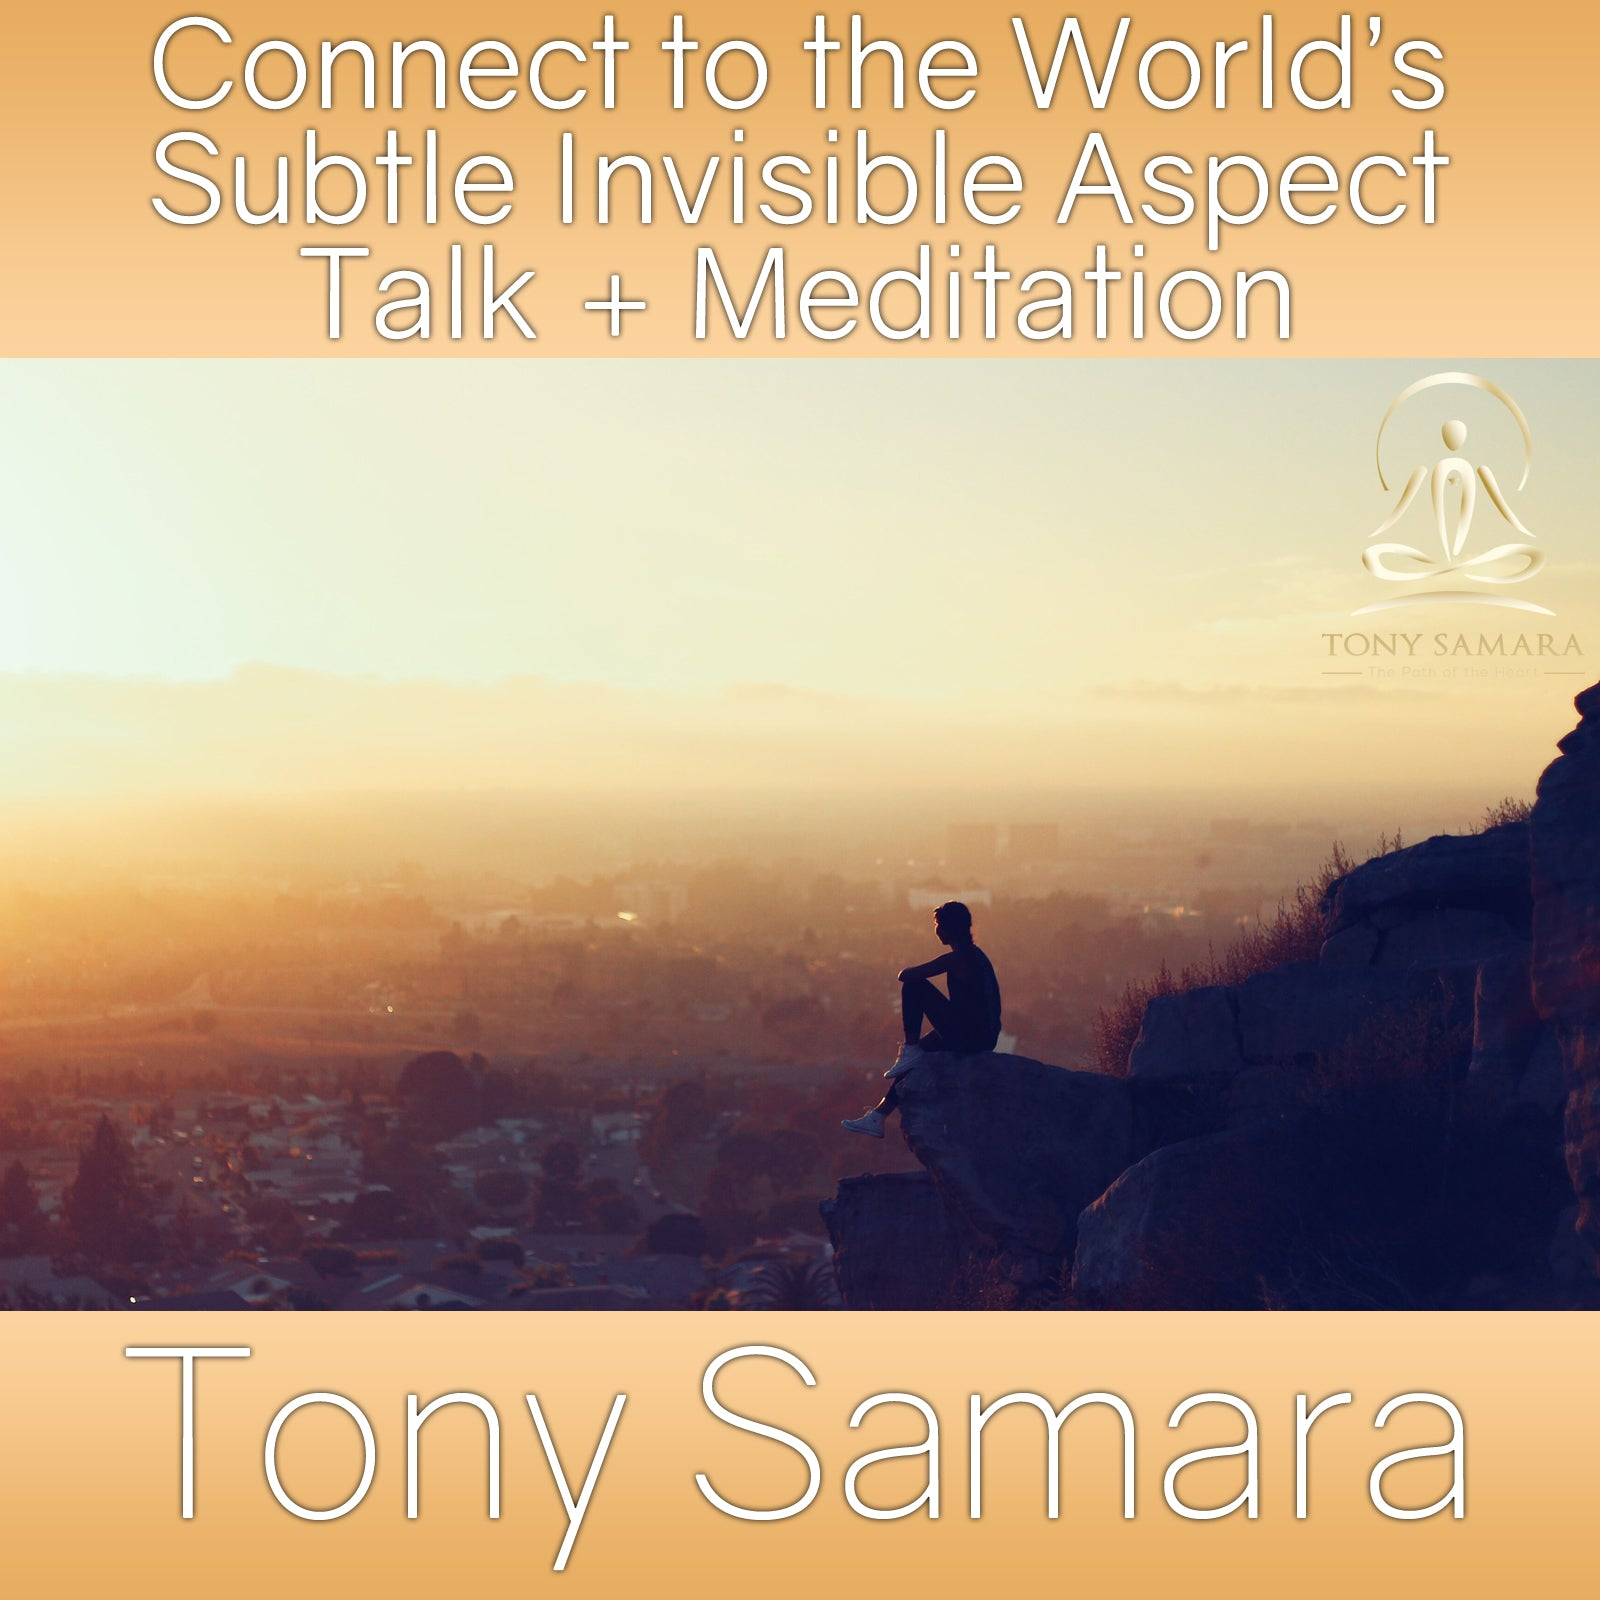 Connect to the World's Subtle Invisible Aspect Talk + Meditation (MP3 Audio Download) - Tony Samara Meditation